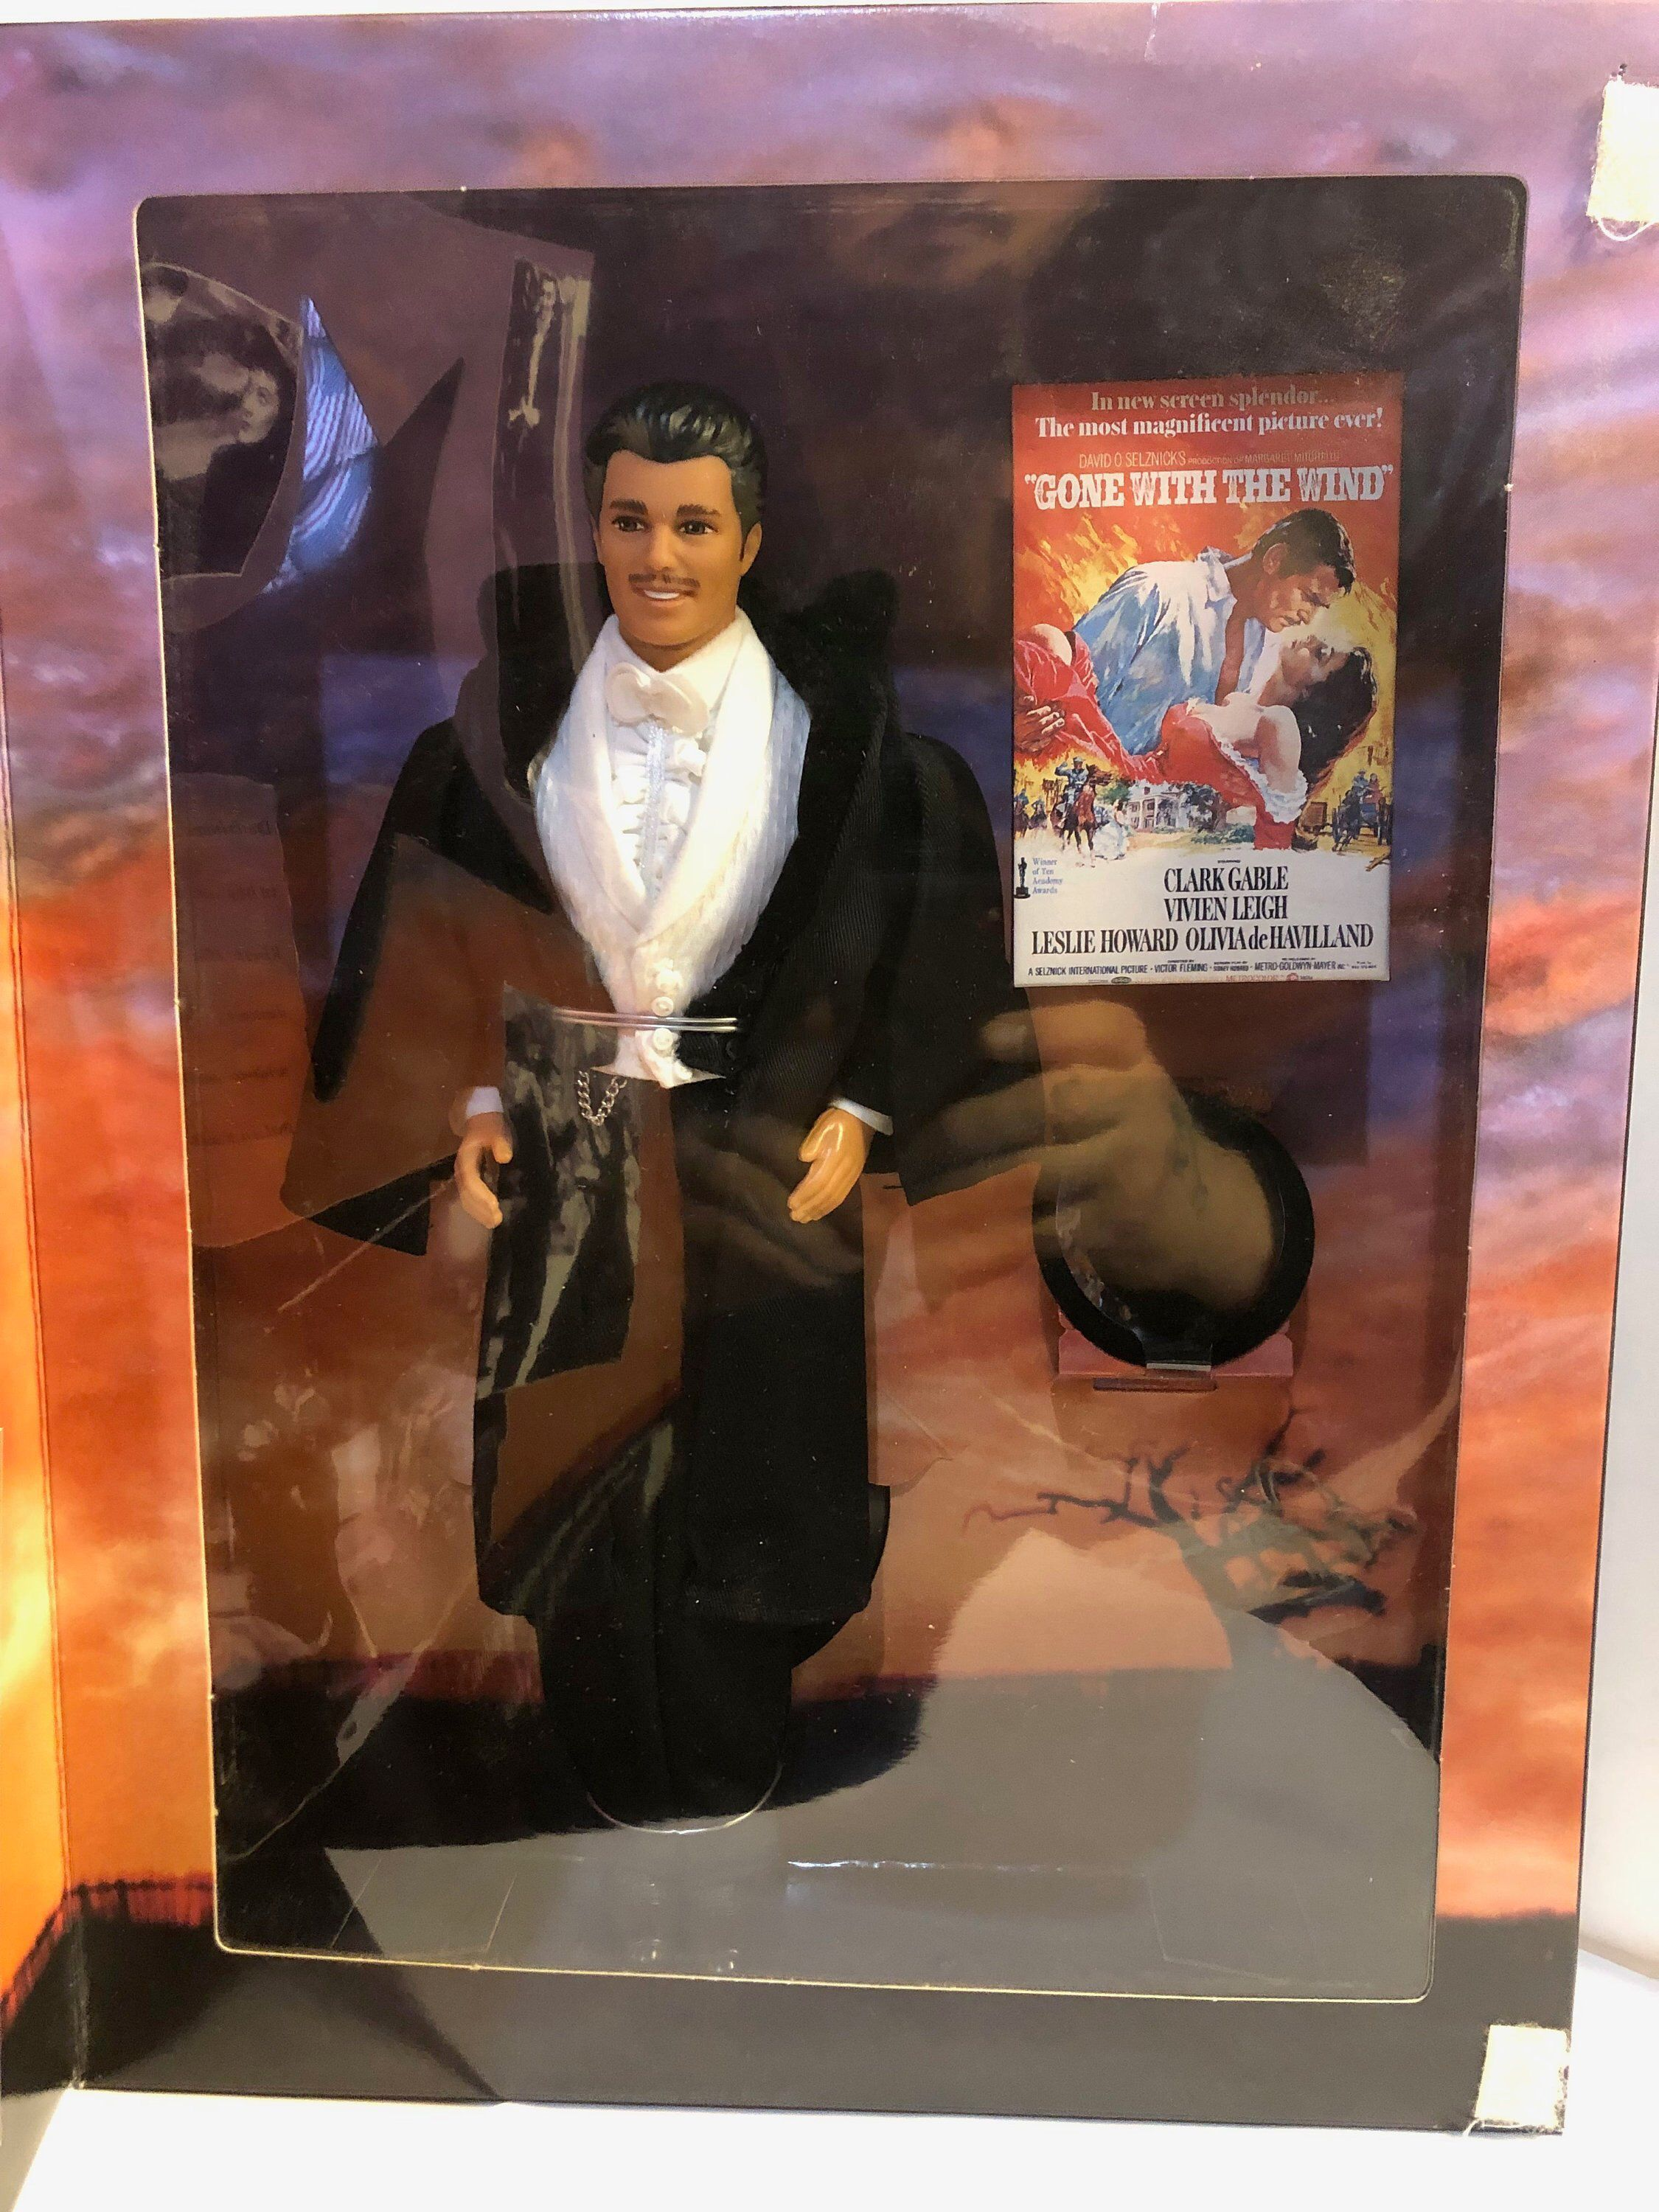 Vintage 1994 Hollywood Legends Collection Ken as Rhett Butler Doll by Mattel Never Opened #hollywoodlegends Excited to share this item from my #etsy shop: Vintage 1994 Hollywood Legends Collection Ken as Rhett Butler Doll by Mattel Never Opened #toys #gold #black #ken #rhett #gonewiththewind #butler #doll #collectible #hollywoodlegends